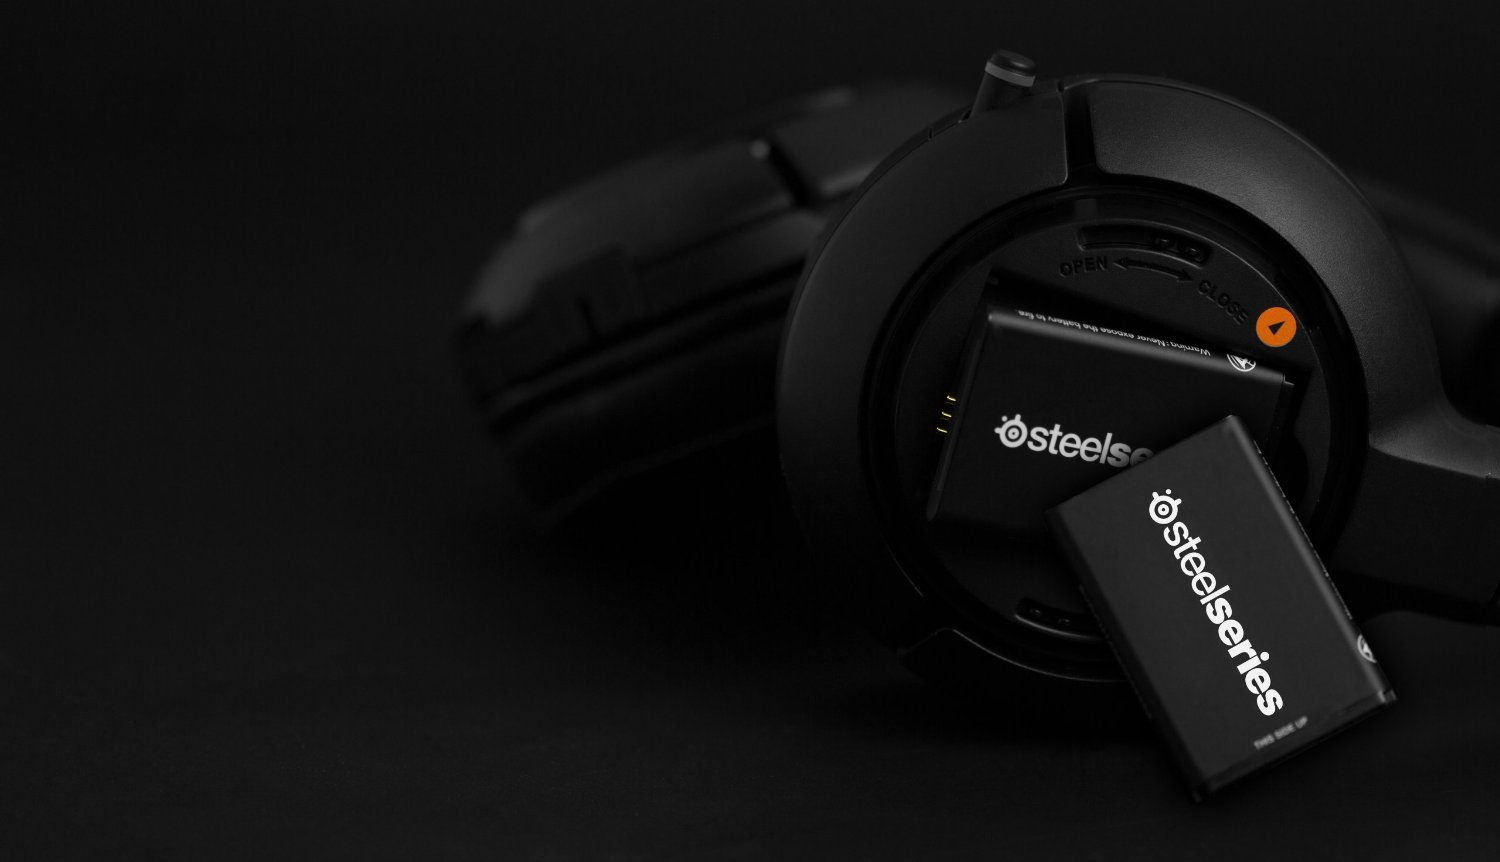 SteelSeries H 6